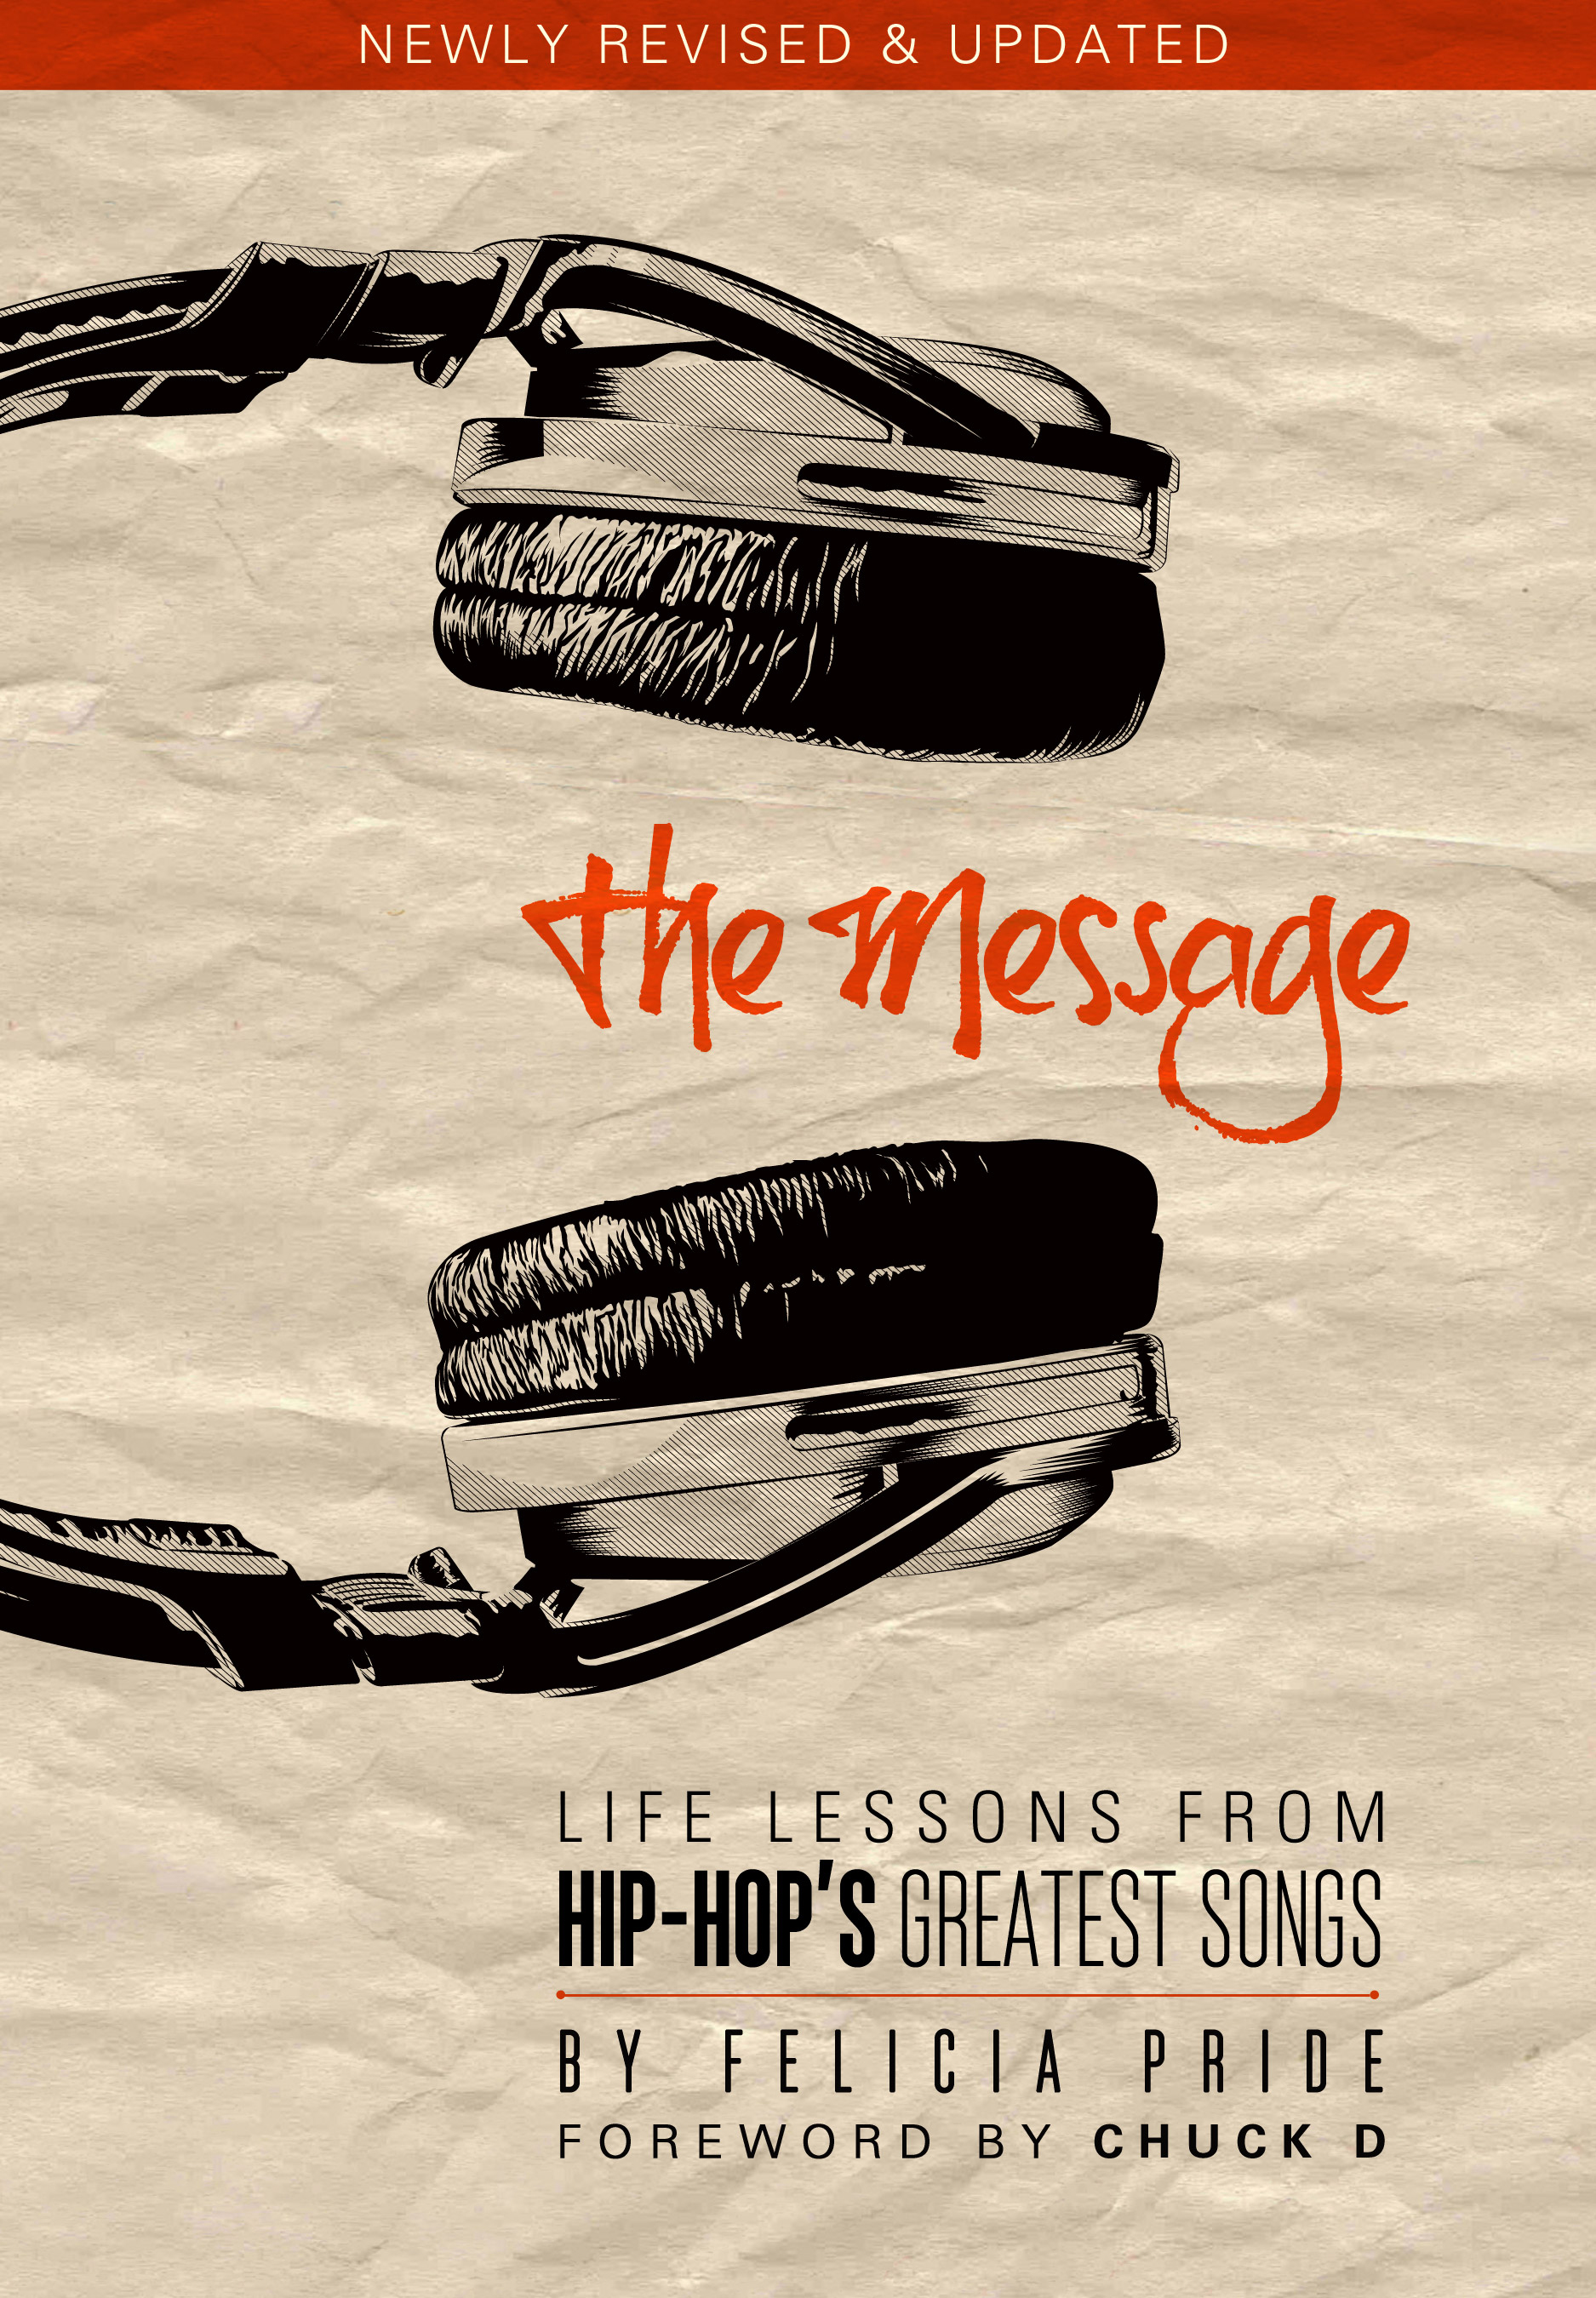 The Message: Life Lessons from Hip-Hop's Greatest Songs (Newly Revised and Updated)